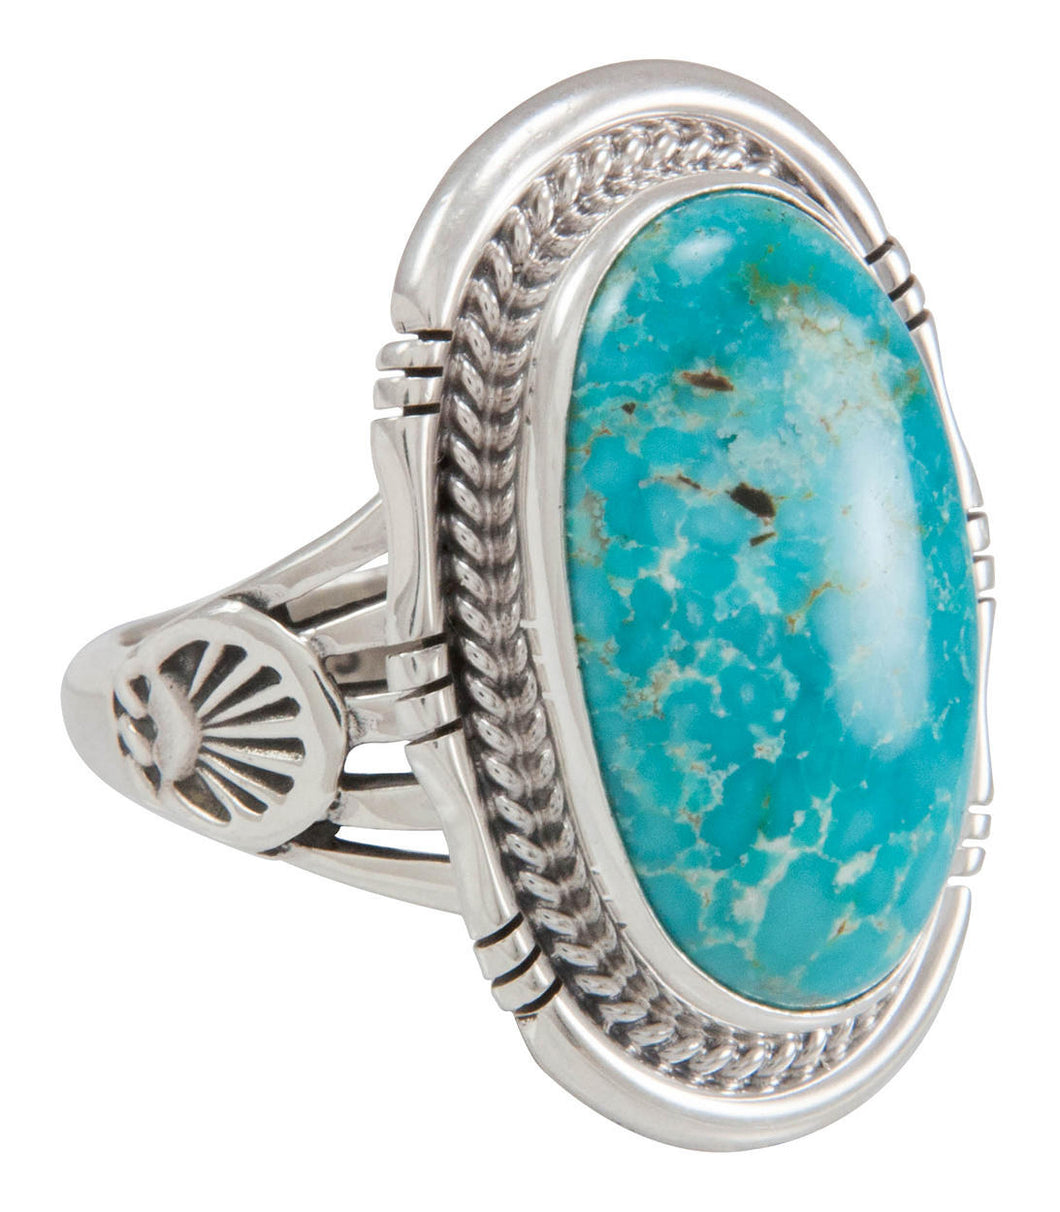 Navajo Native American Sunnyside Mine Turquoise Ring Size 9 SKU230622